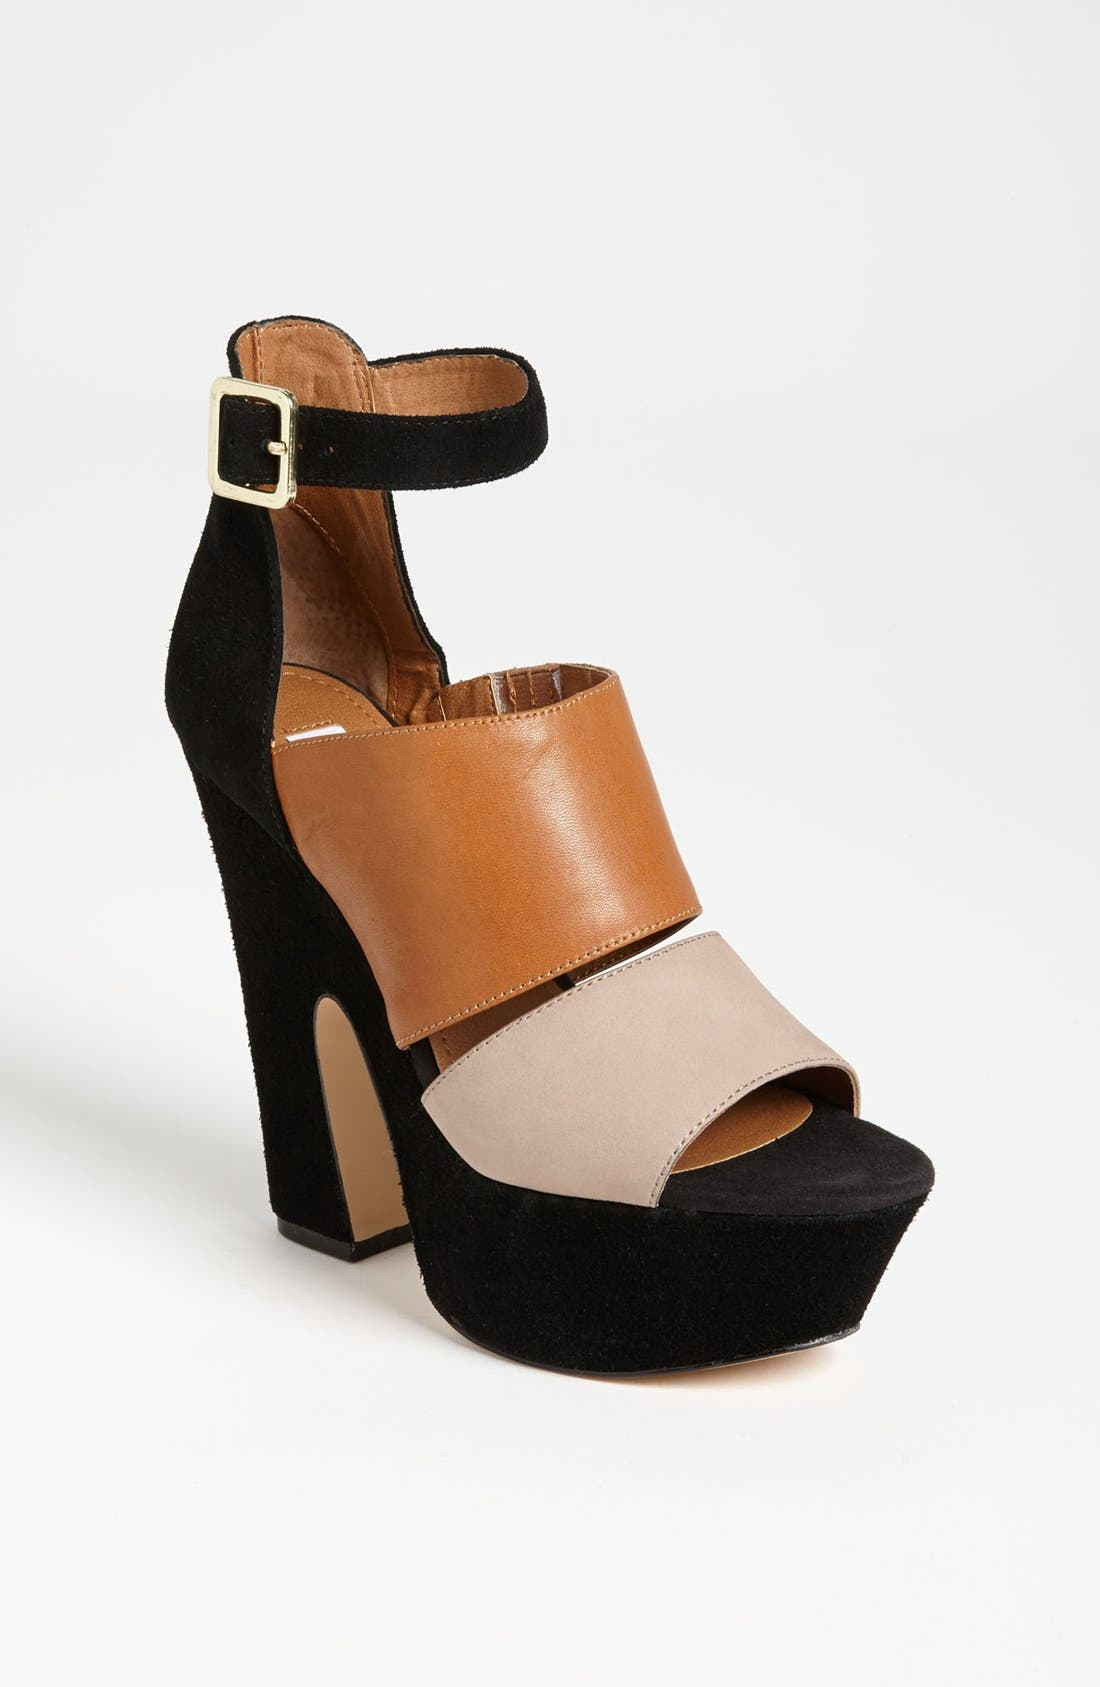 Alternate Image 1 Selected - Steve Madden 'Shocker' Sandal